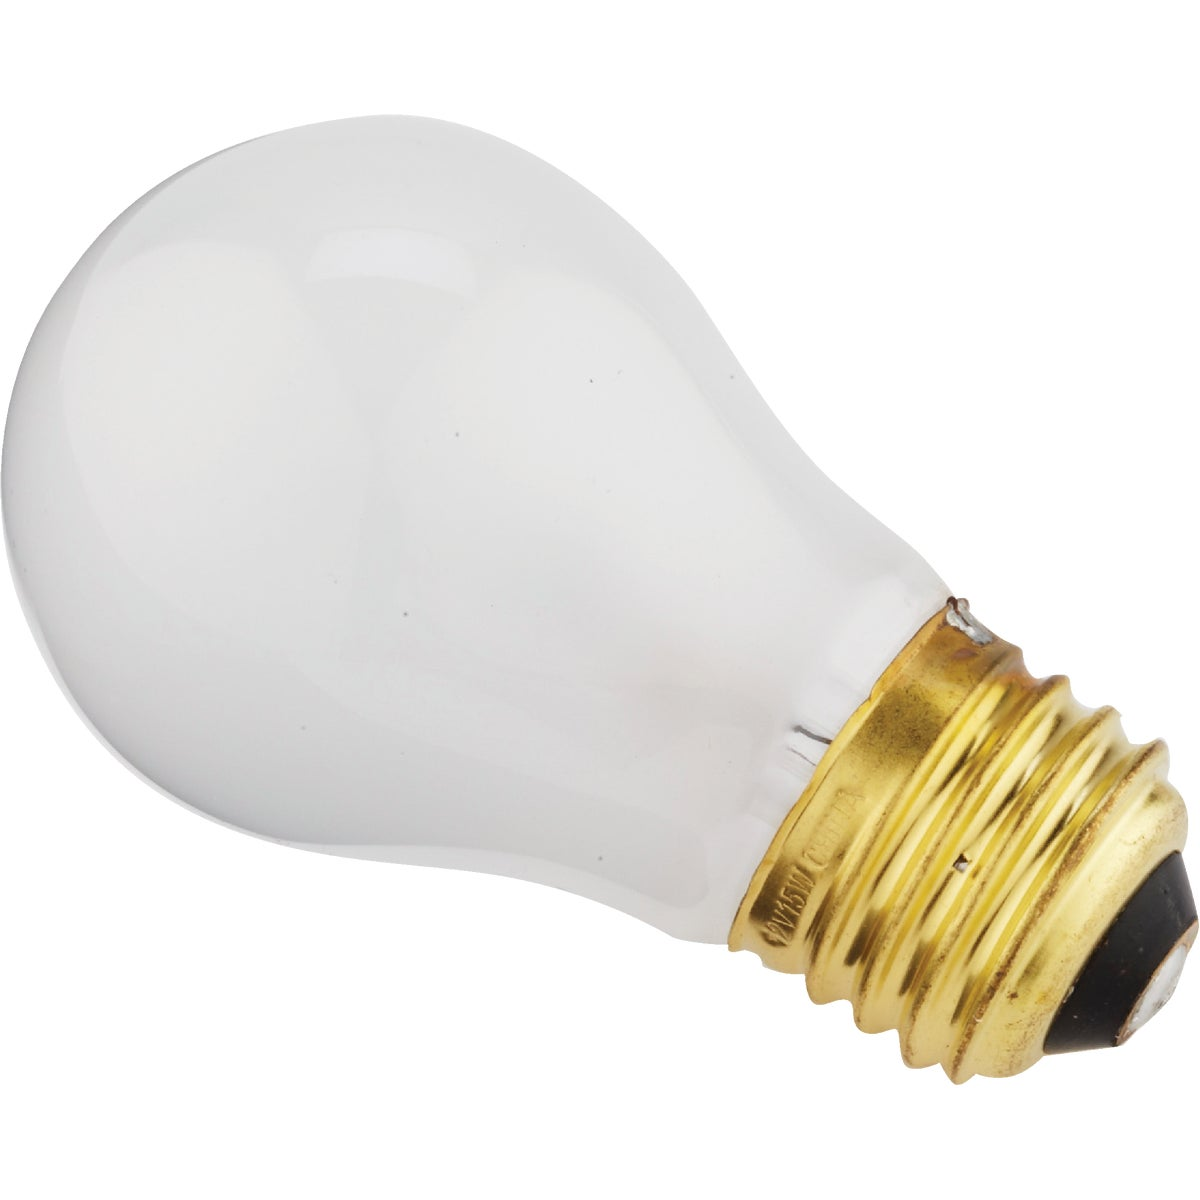 A-15 15W/12V OVEN BULB - 54890 by Camco Mfg.